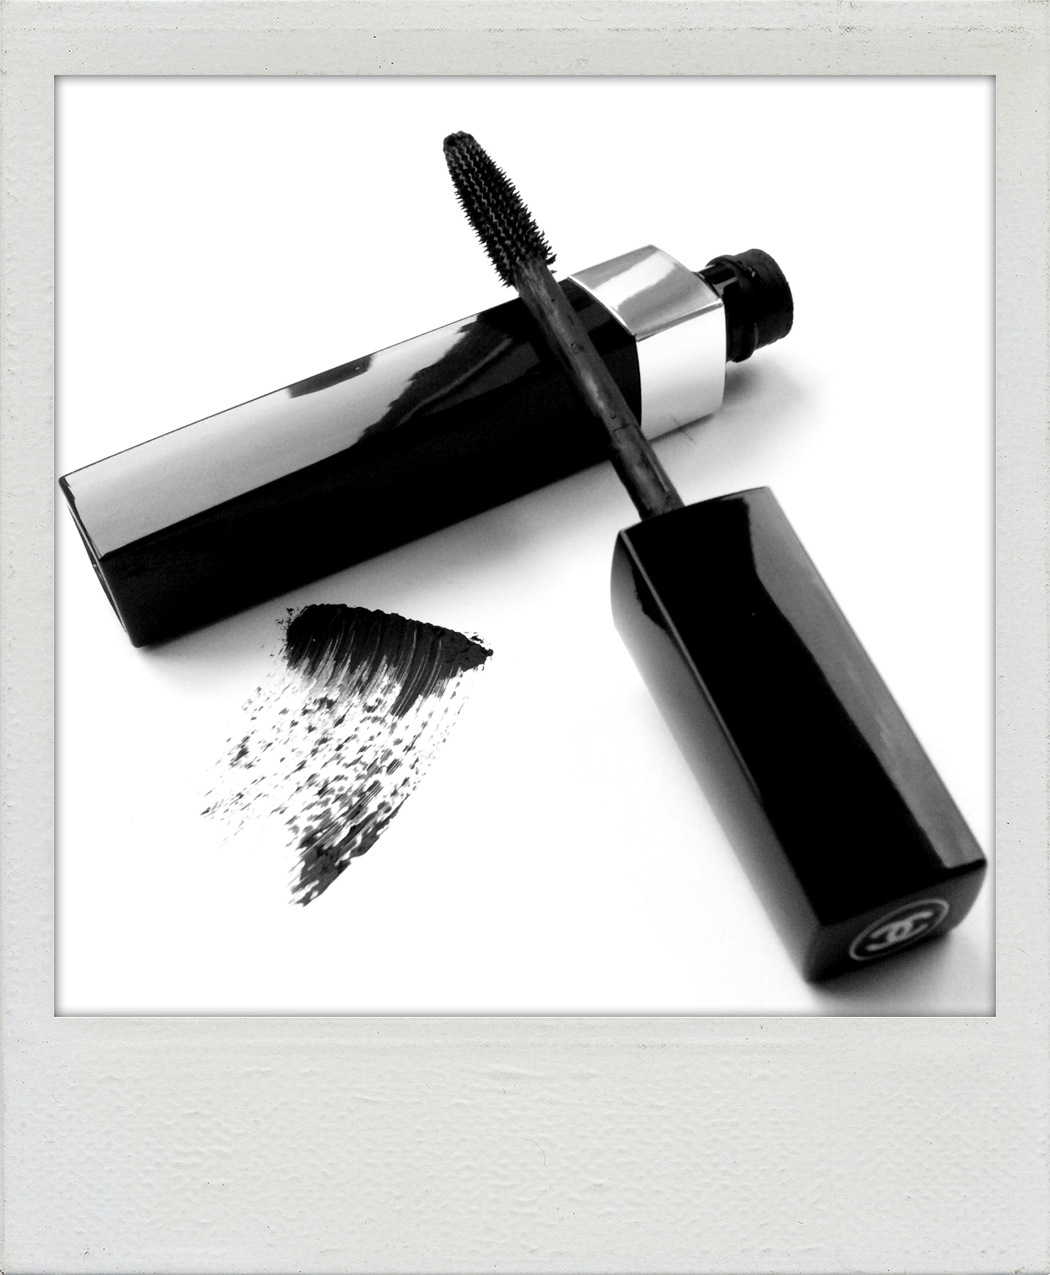 02d8e0df064 Max Made » PRODUCT OF THE WEEK: CHANEL INIMITABLE INTENSE MASCARA